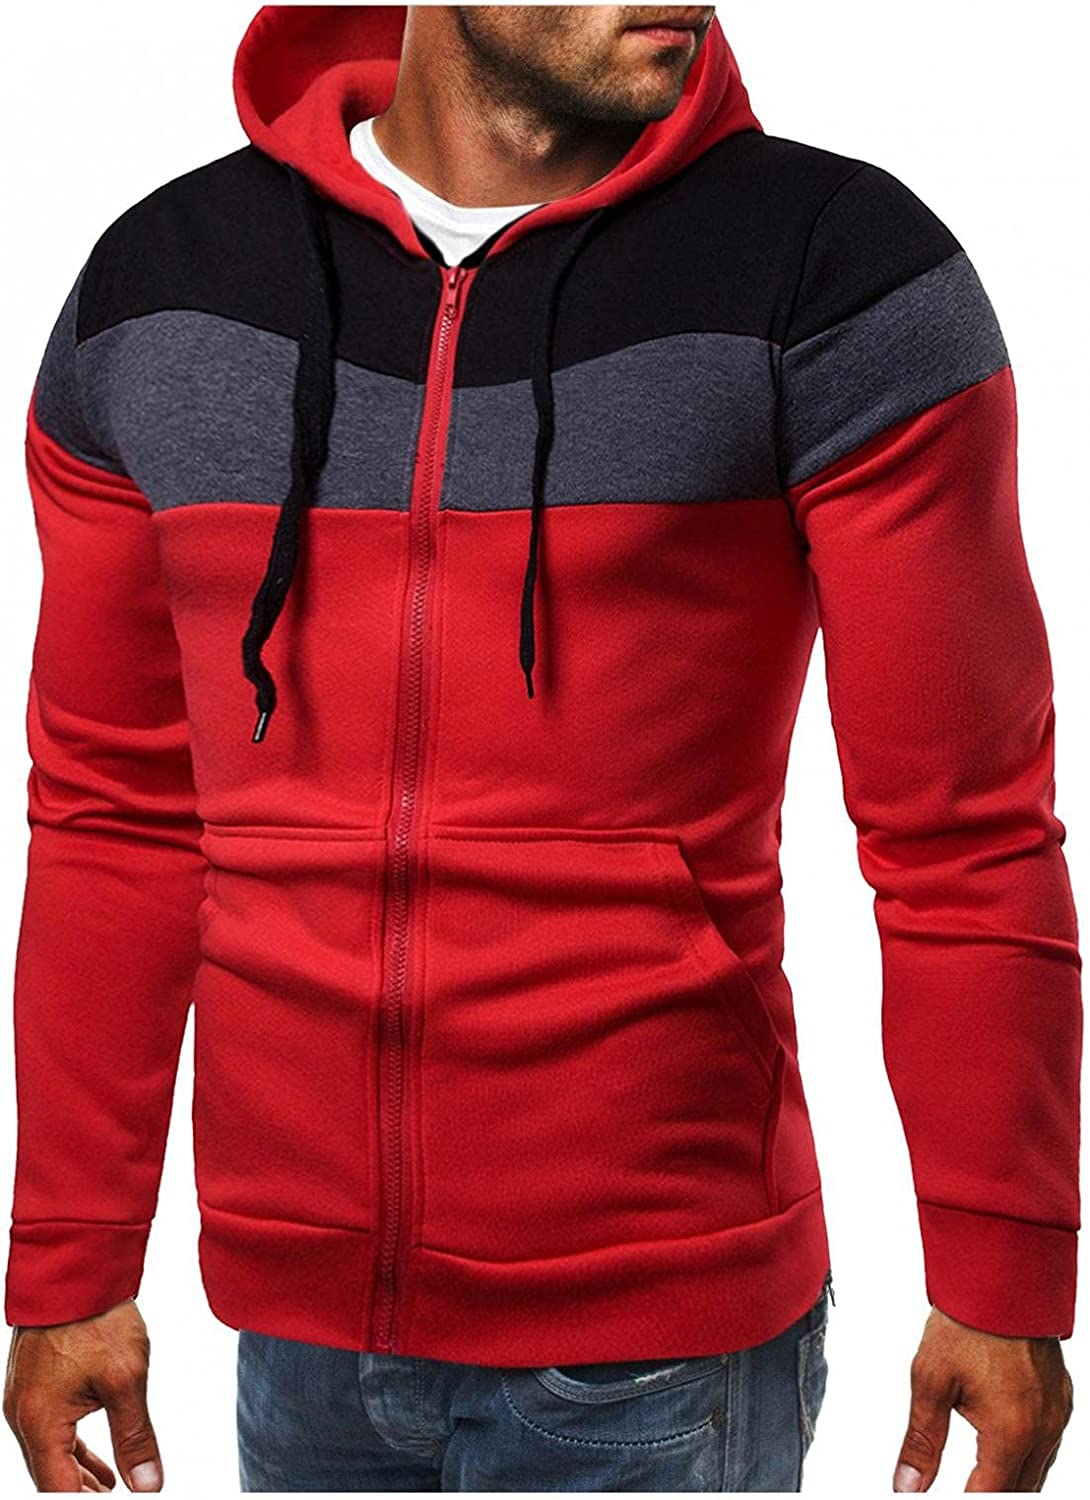 Qsctys Hoodies for Men - 2021 Casual Thick Fleece Lined Full Zip Up Winter Warm Sweatshirts Workout Jackets Heavyweight